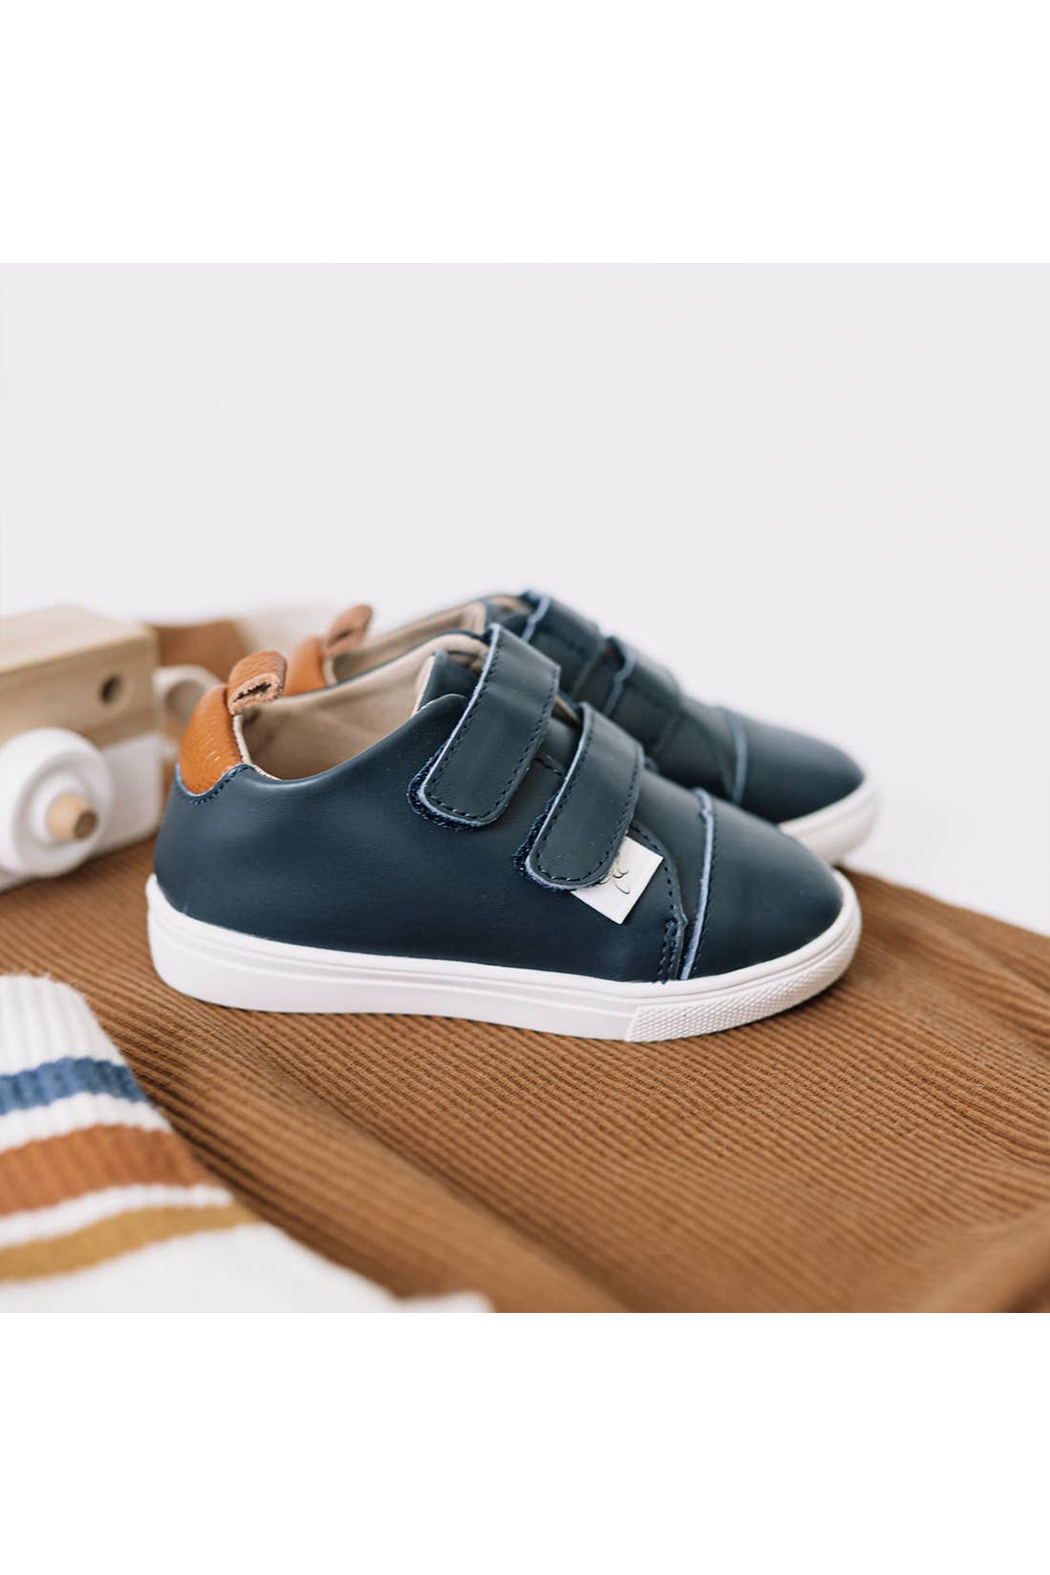 Little Love Bug Company Casual Navy Low Top Moccasin - Main Image